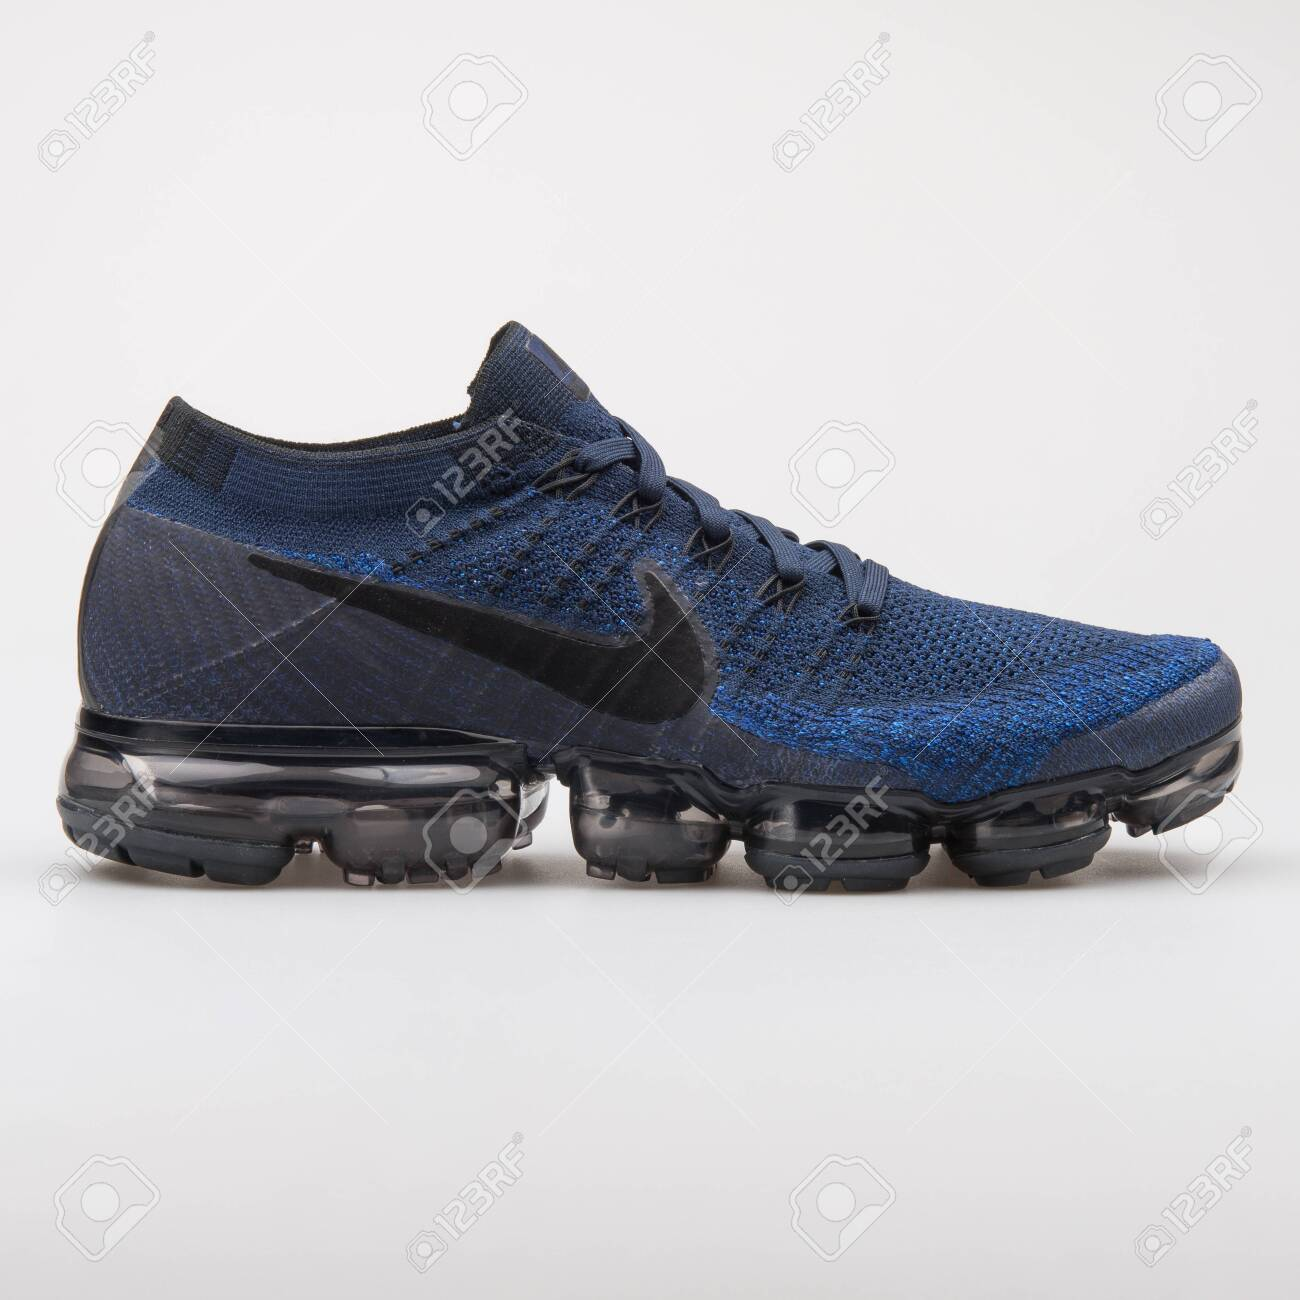 best loved 66bfd cb02d VIENNA, AUSTRIA - AUGUST 7, 2017: Nike Air Vapormax Flyknit blue..